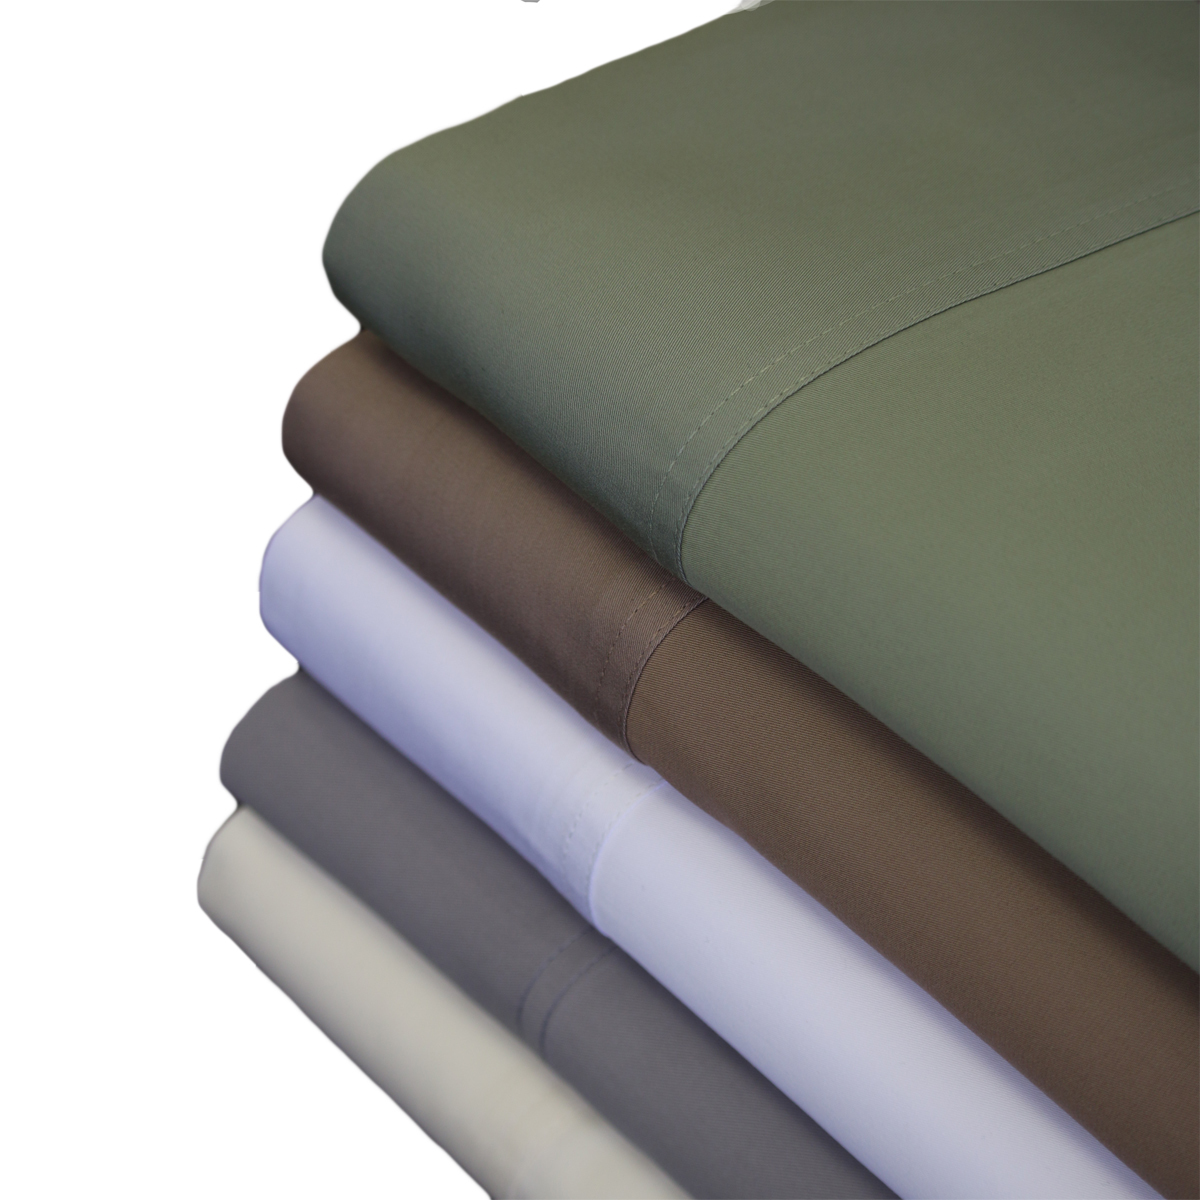 Abripedic. 600 Thread Count 100% Bamboo Viscose Sheet Set Collection by Abripedic. Are you comfort conscious? These 100% Bamboo viscose 600 Thread Count Sheet Set is an impeccable choice. These 100% bamboo viscose sheets are acknowledged for their natural softness, durability, and breathability. These sheets are cool and welcoming every night of the week. Experience our superior bamboo viscose sheets for yourself, and see what we mean. They come in 5 soft and soothing colors and make every bed in your home a bamboo viscose one.